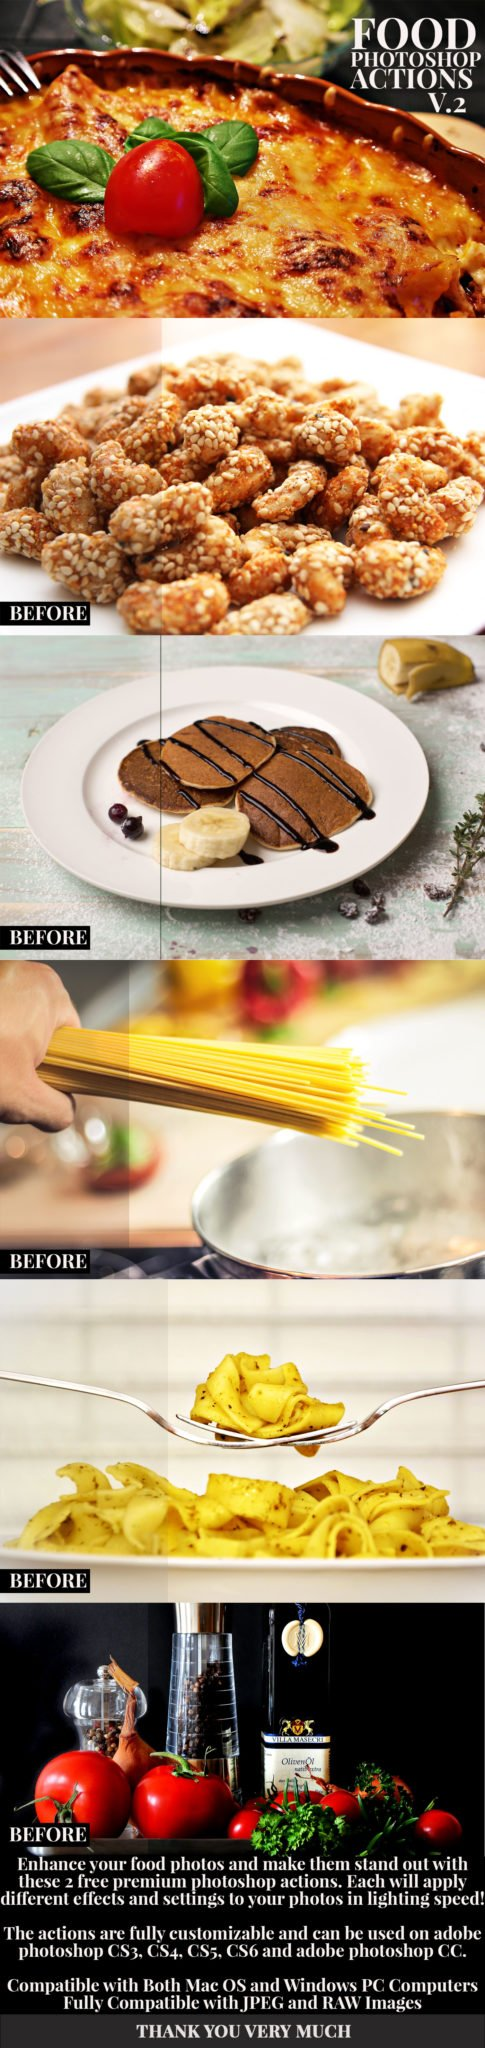 Free Food Photography Photoshop Actions V.2